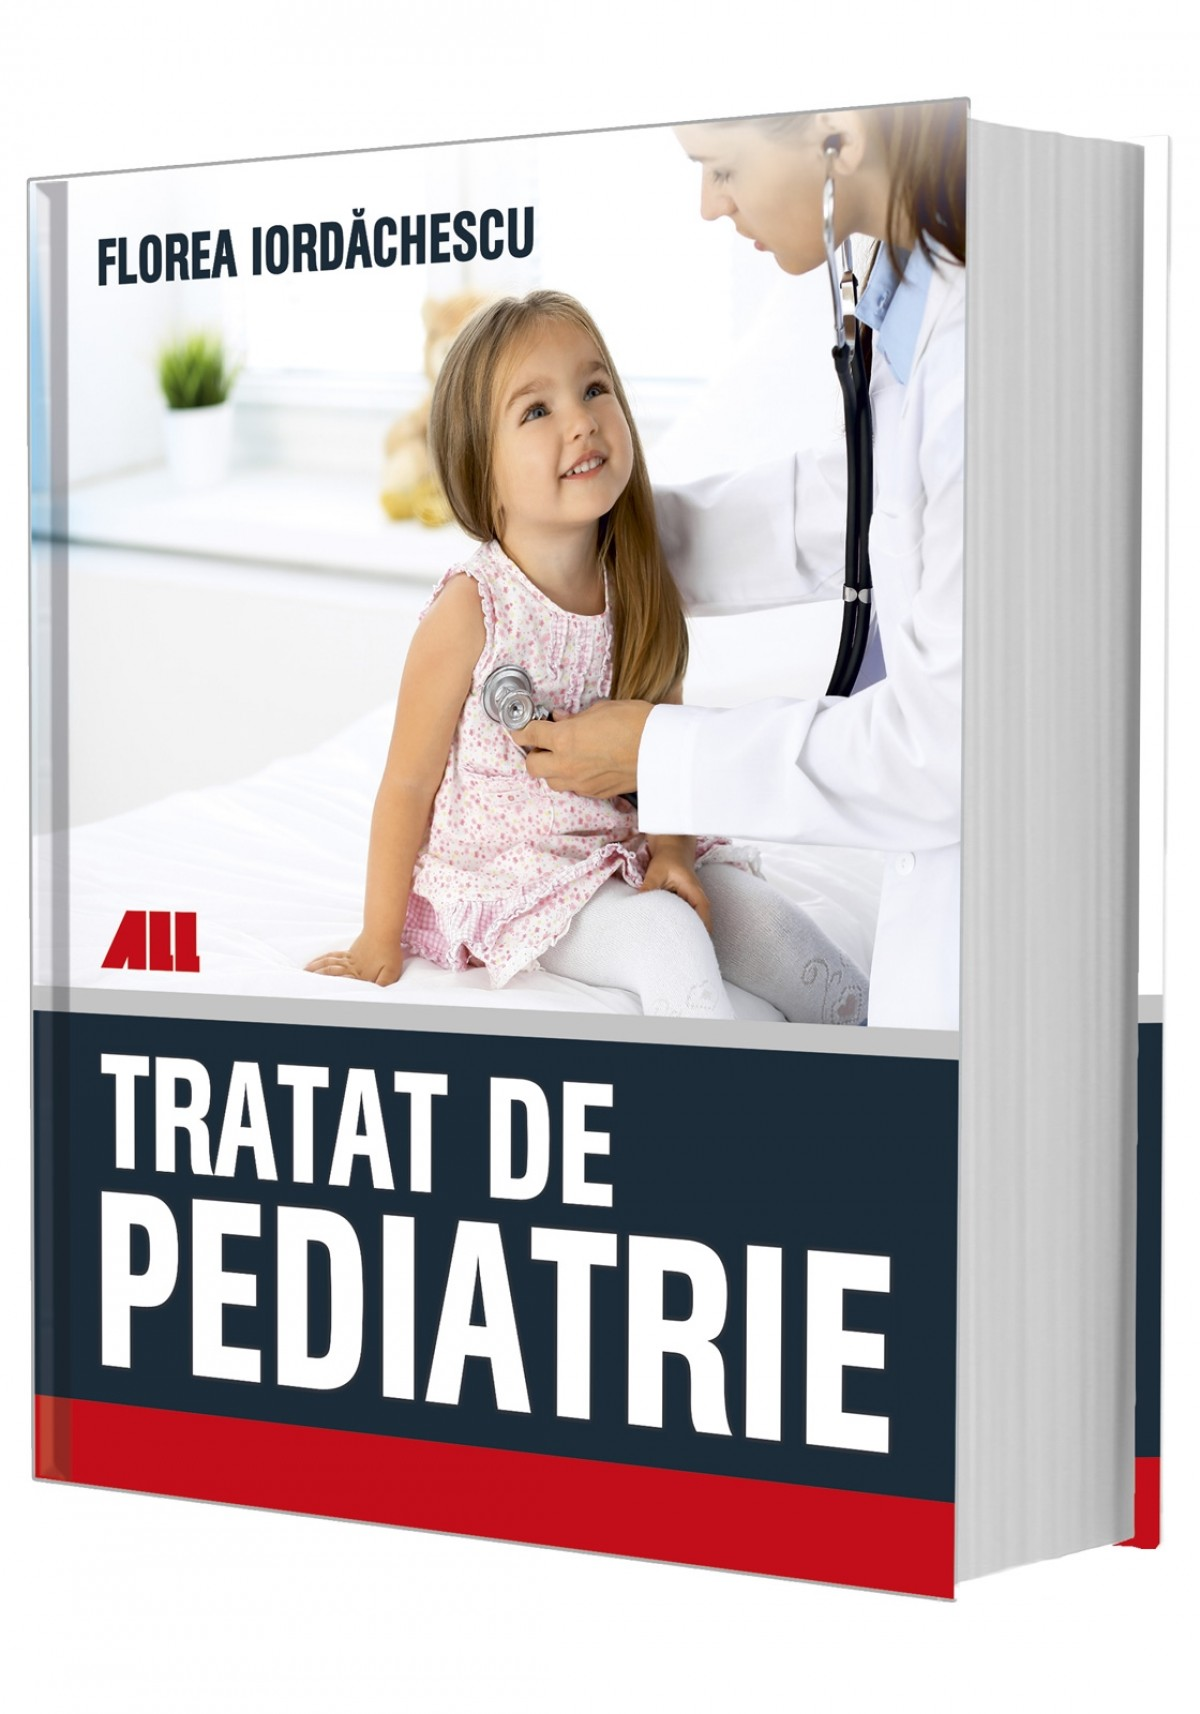 Tratat de pediatrie